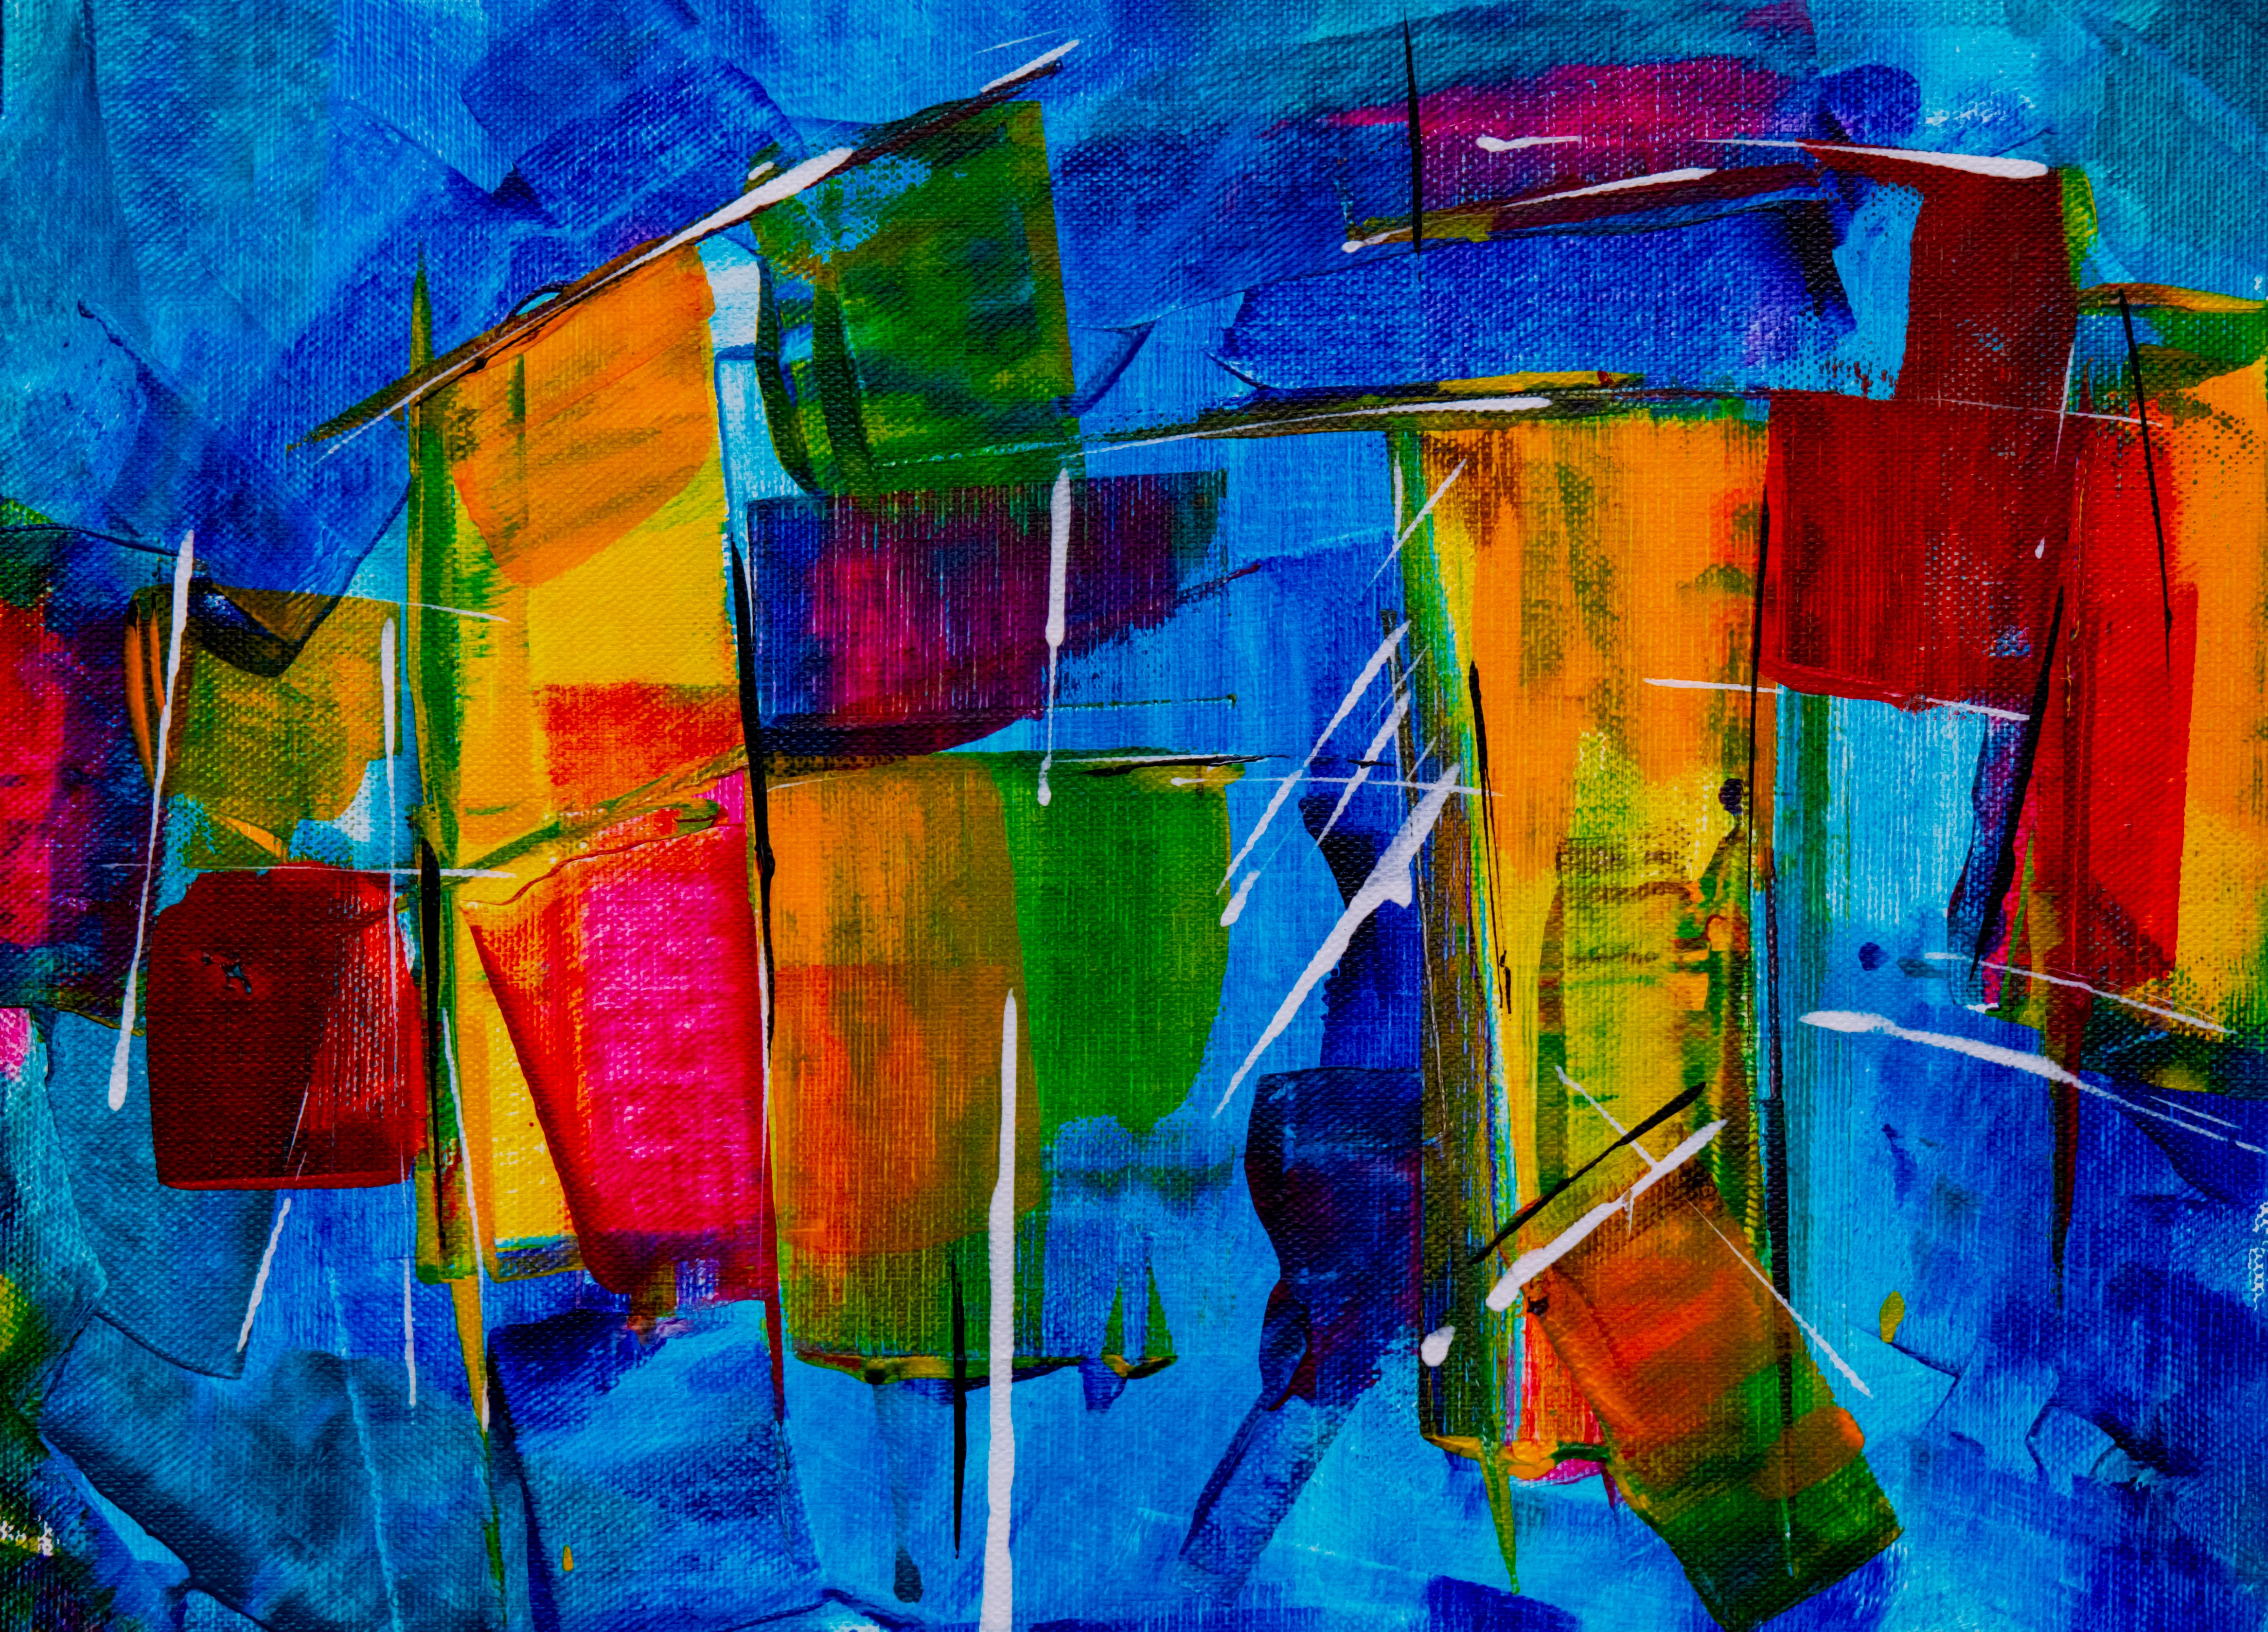 green, blue, and red abstract painting